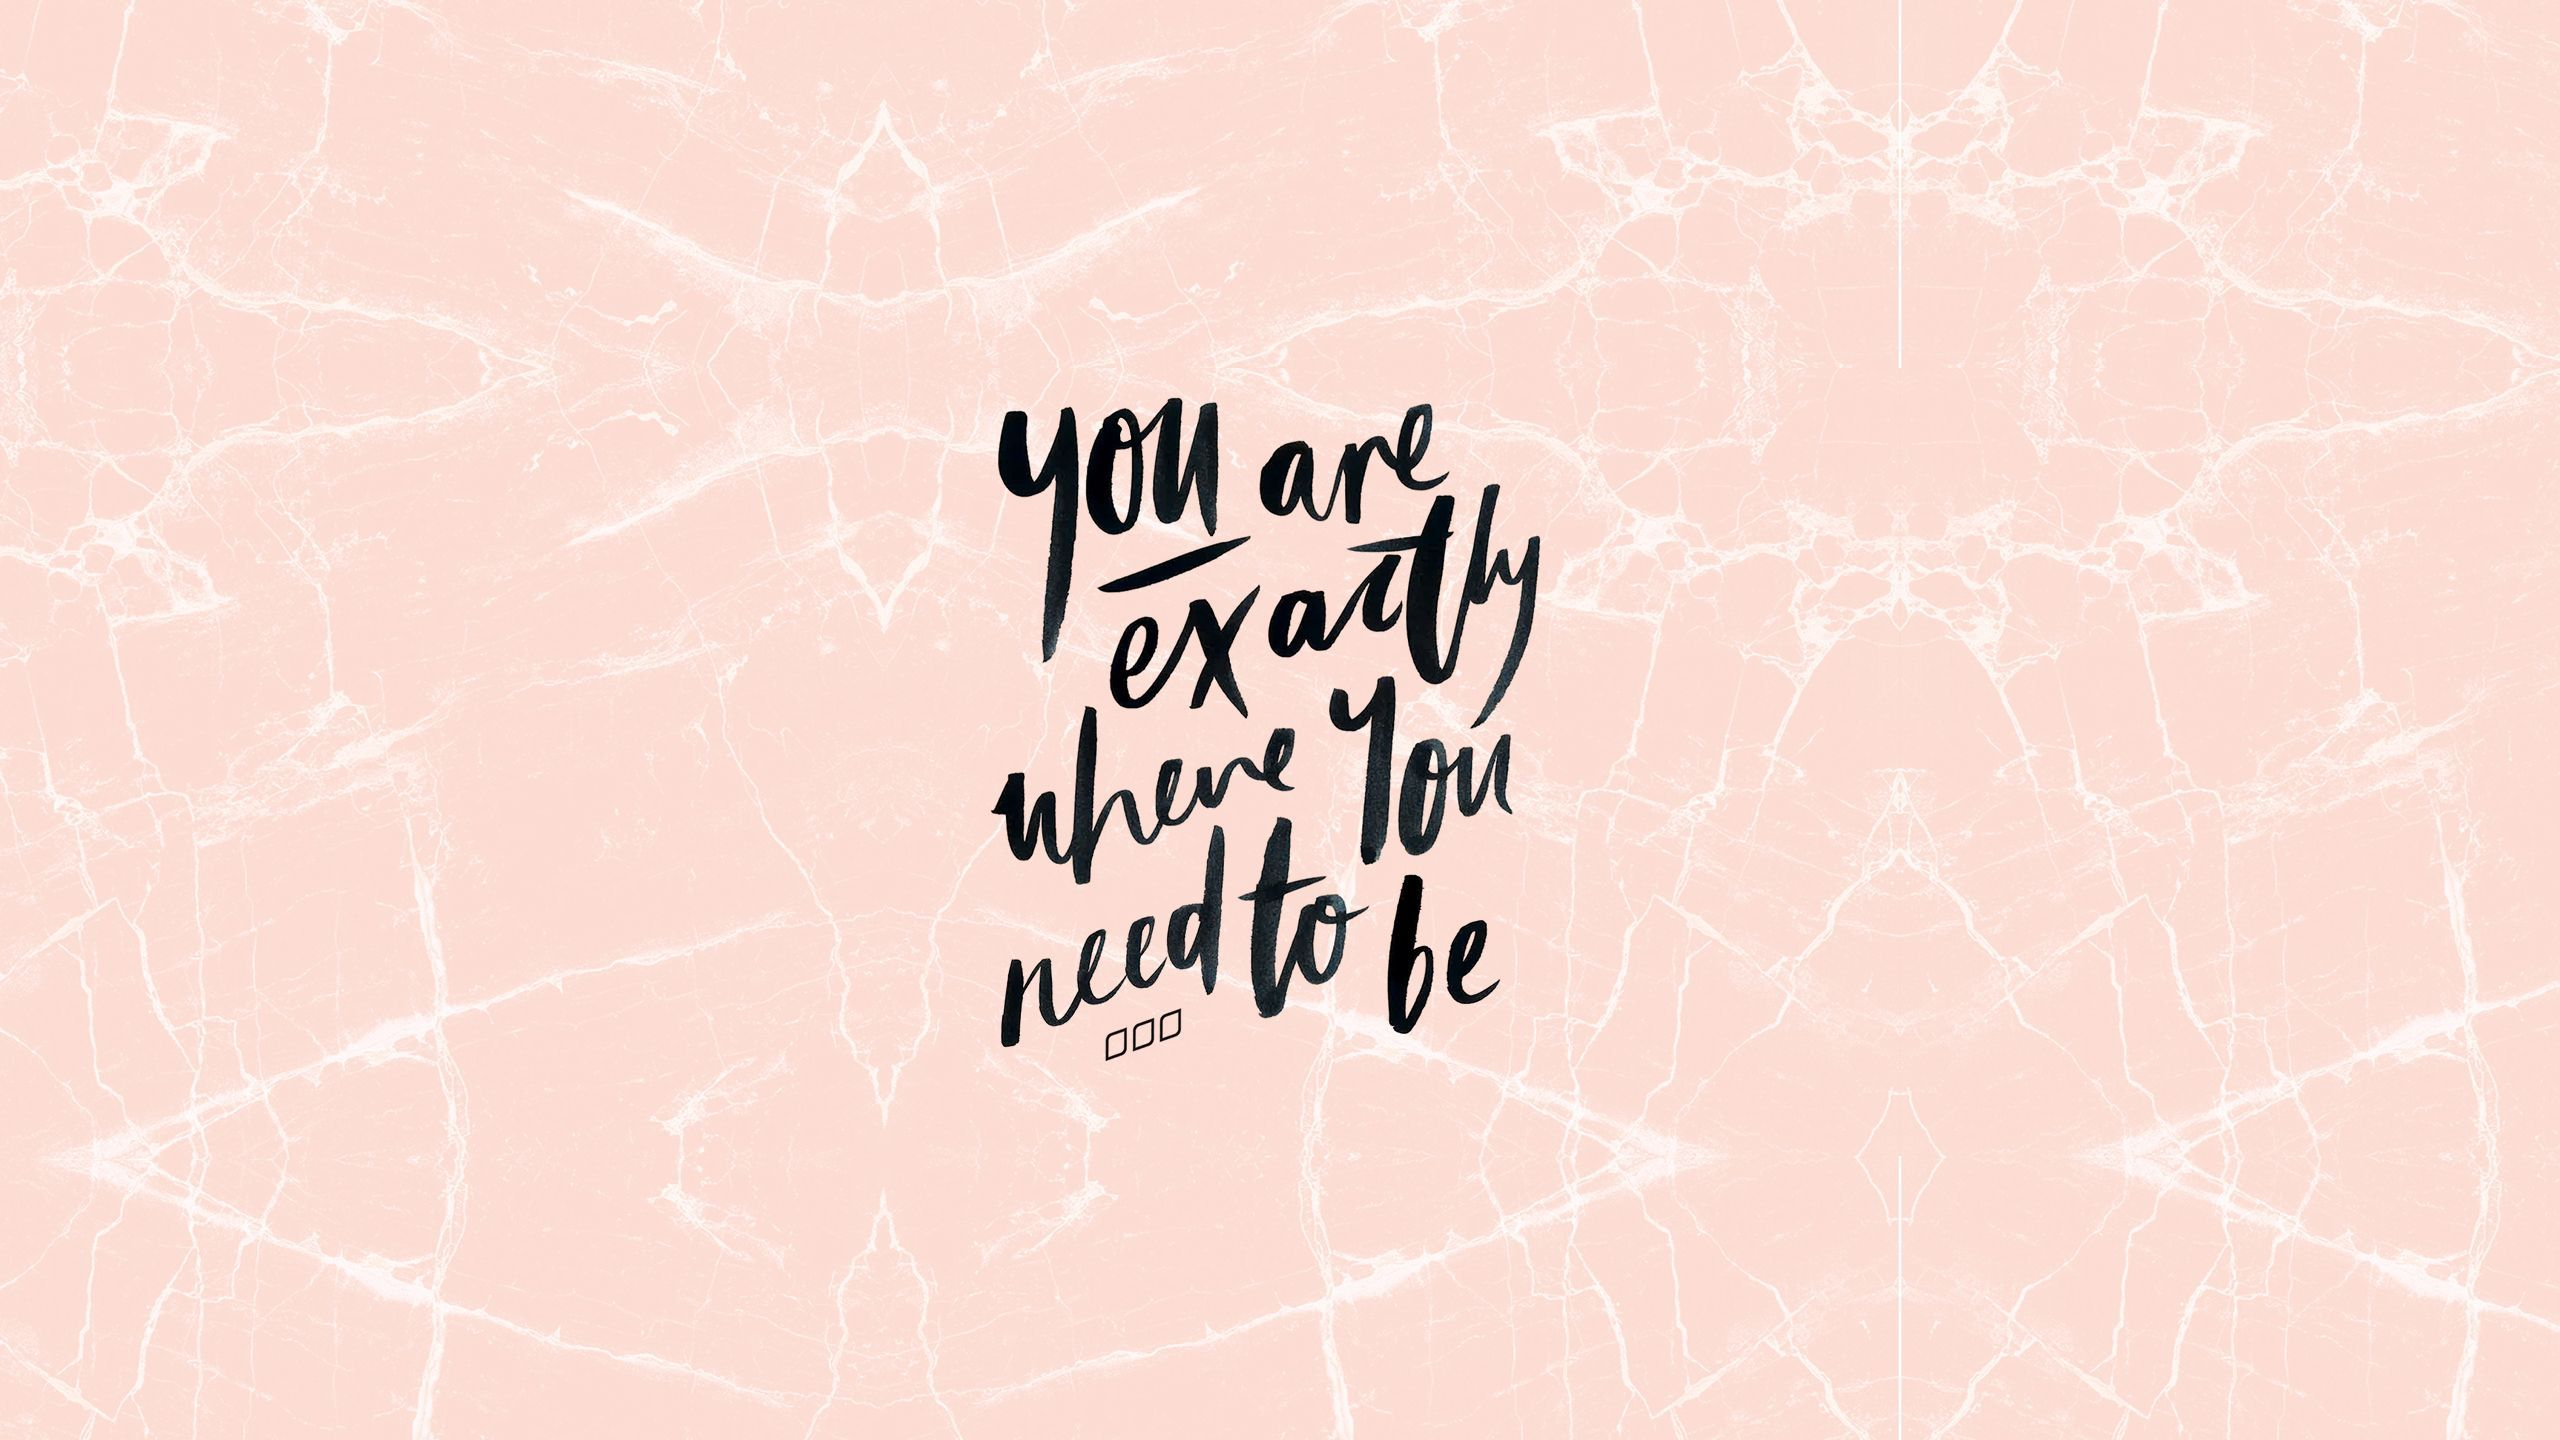 Quotes Laptop Wallpapers Posted By Zoey Cunningham